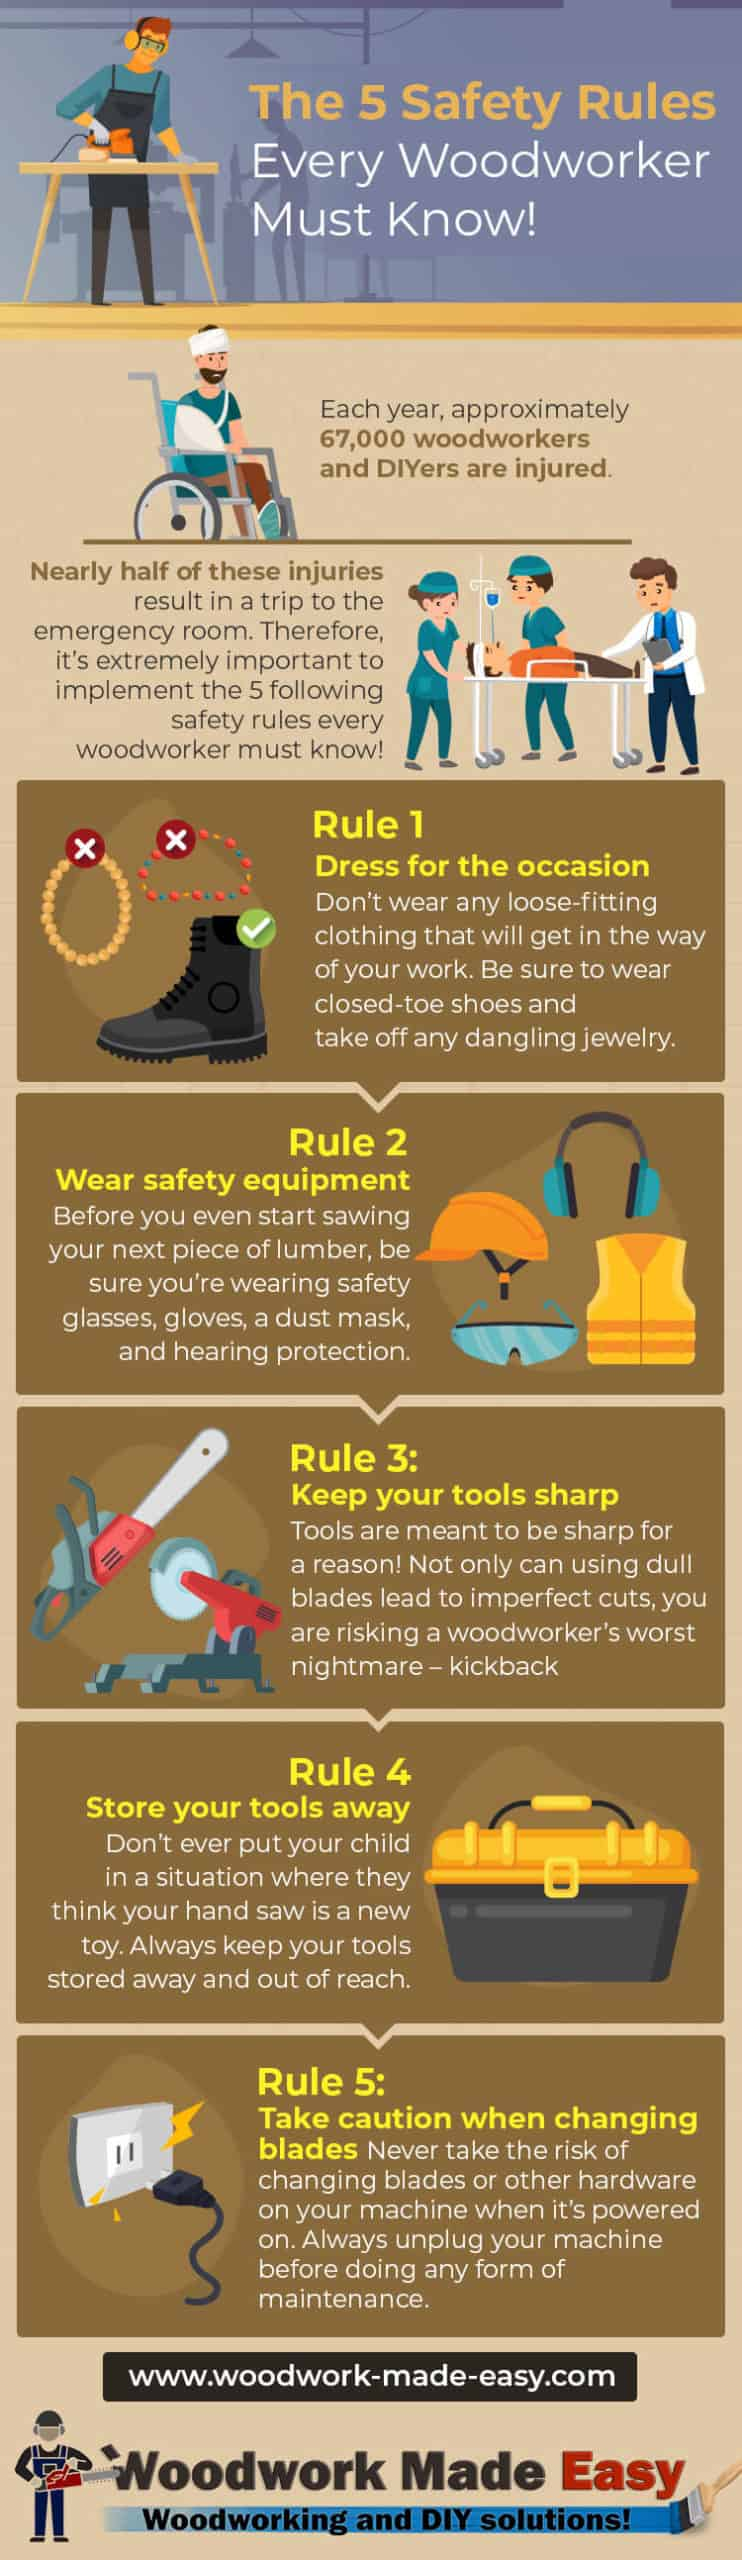 safety-rules-for-woodworking-infographic